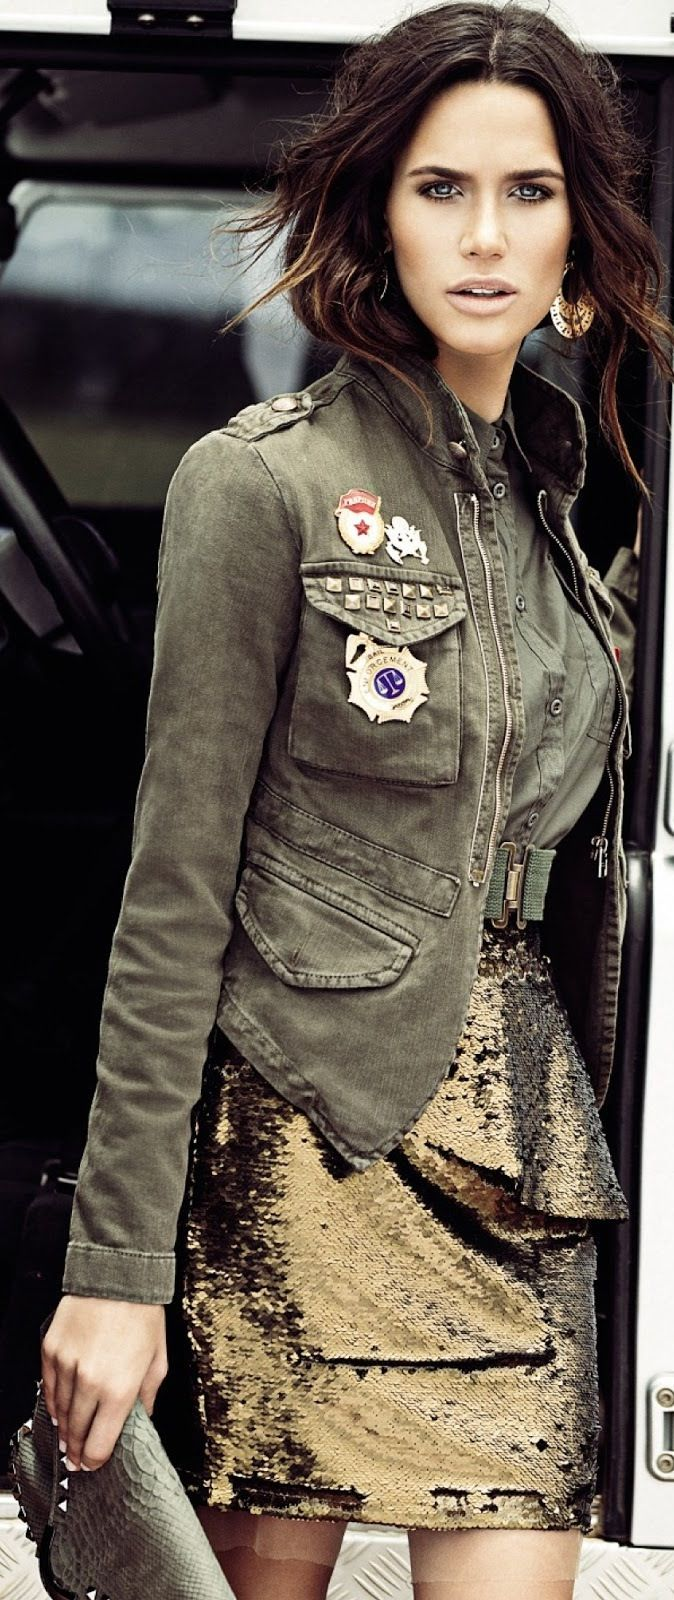 cf091ec28f2c Fall street style - Rhayene Polster Vogue Brazil March 2013, military  jacket and glitter gold skirt